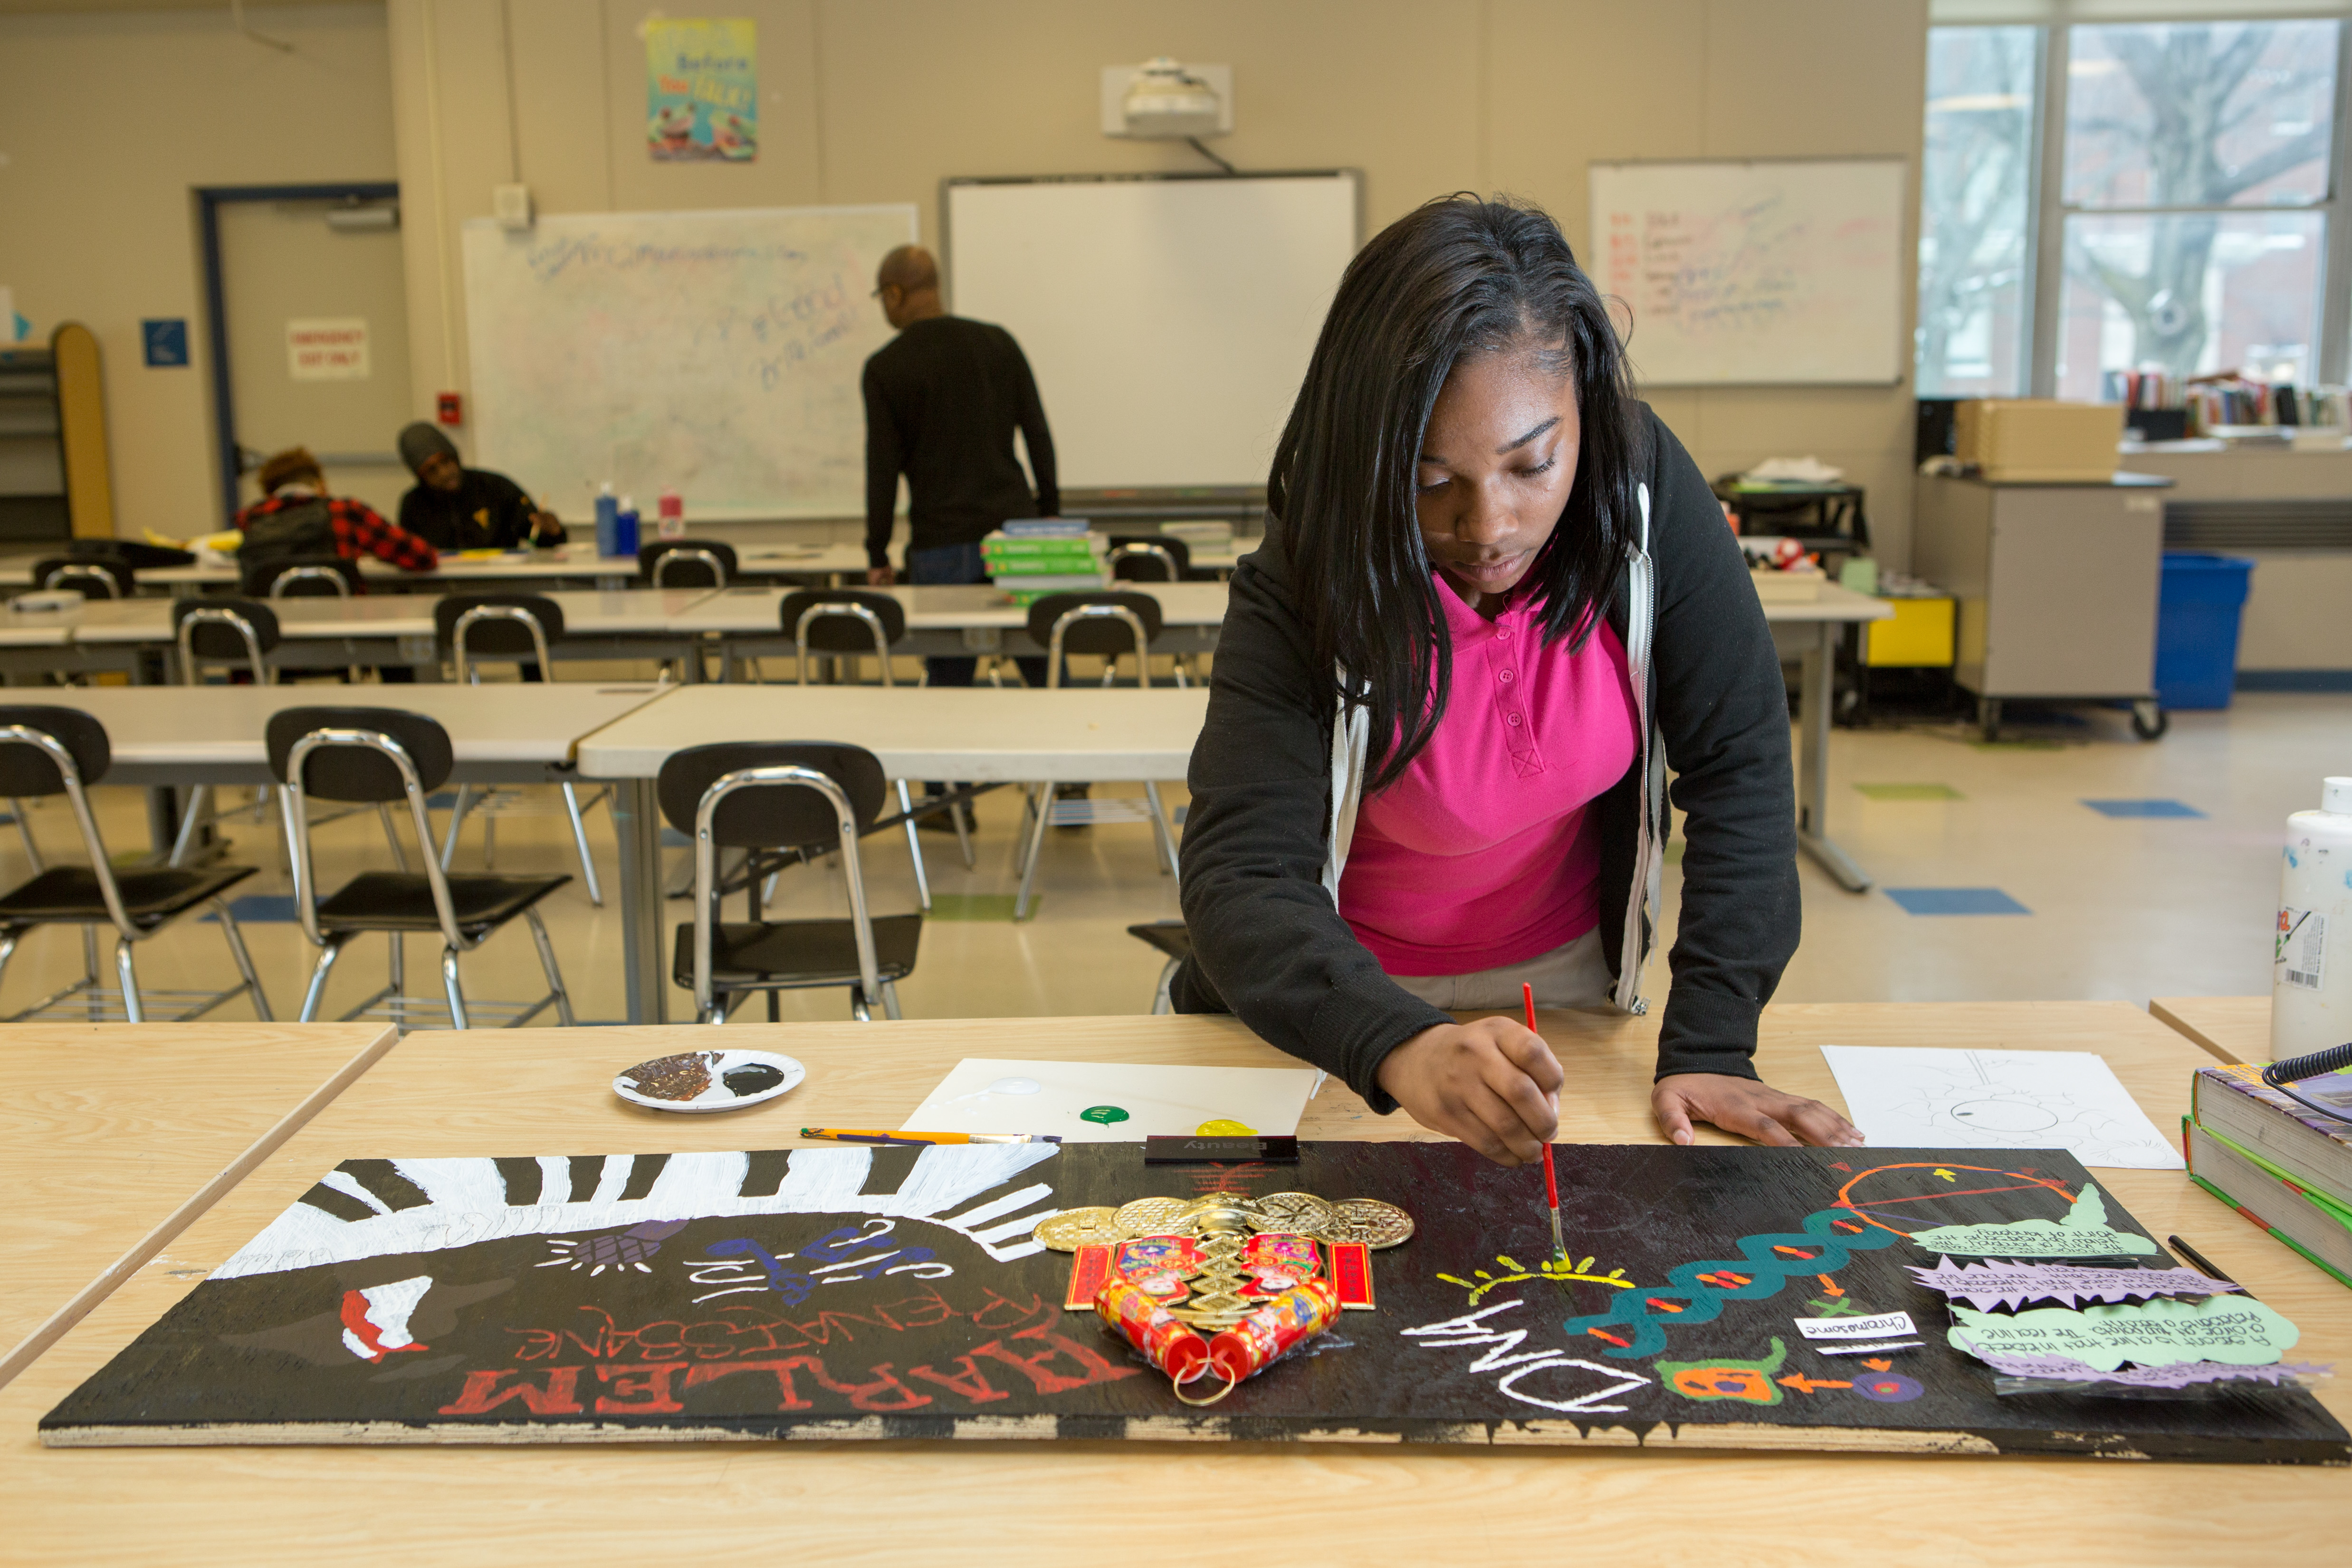 A girl wearing a black hoodie and a pink polo shirt works on an art project while other students speak with a teacher on the other side of the classroom.